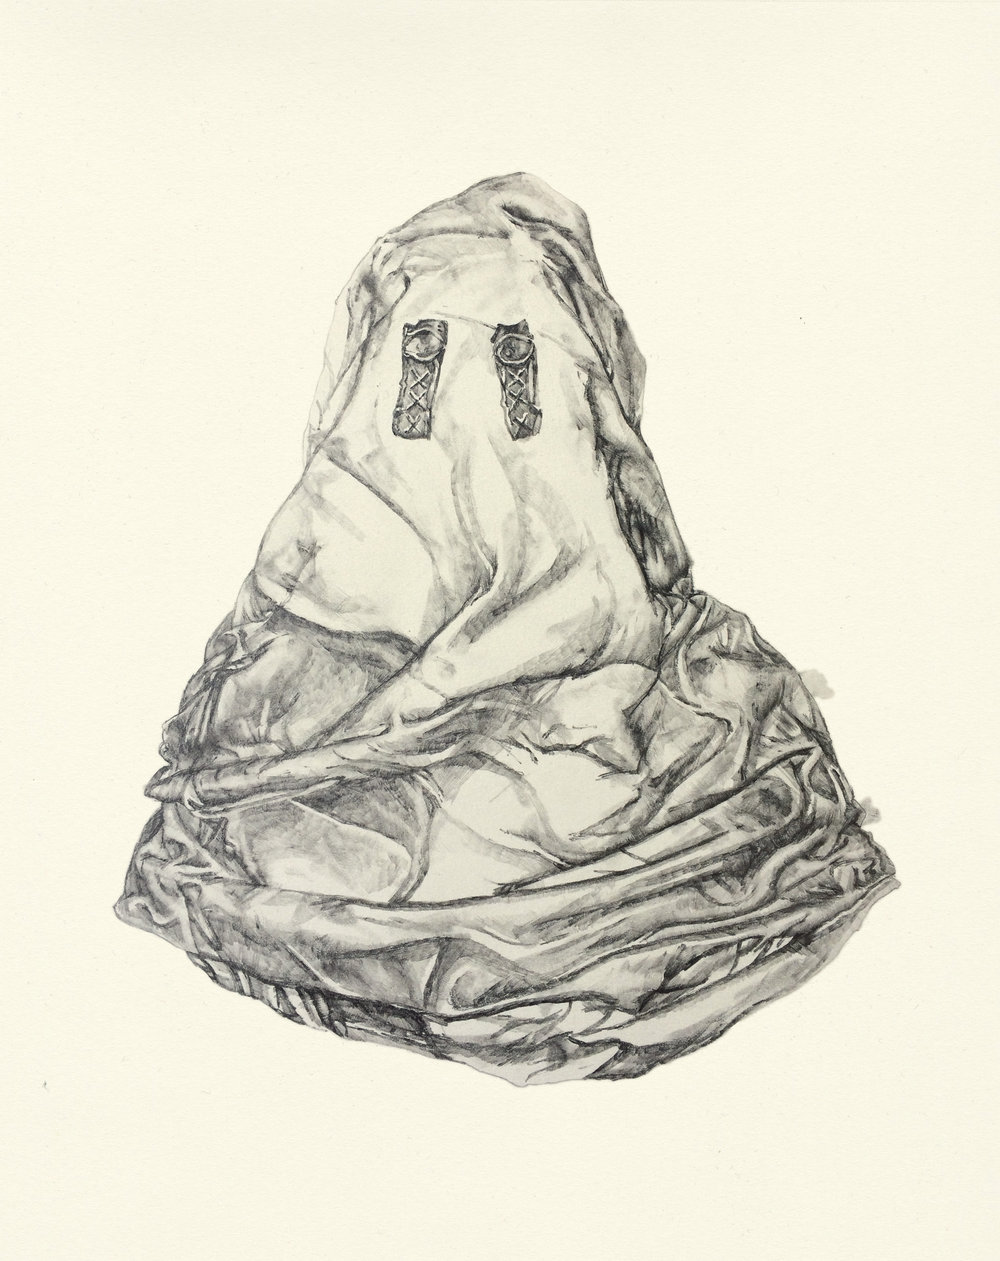 My Boyfriend is a Peacekeeper xxxi  | graphite on paper | 9.5INx12IN    Excerpt from My Boyfriend is a Peacekeeper Book ii : Flat like a shark, one of Melville's ungoverned angels. These visions don't frighten me anymore. They are just different configurations. I have seen so many iterations of the body.